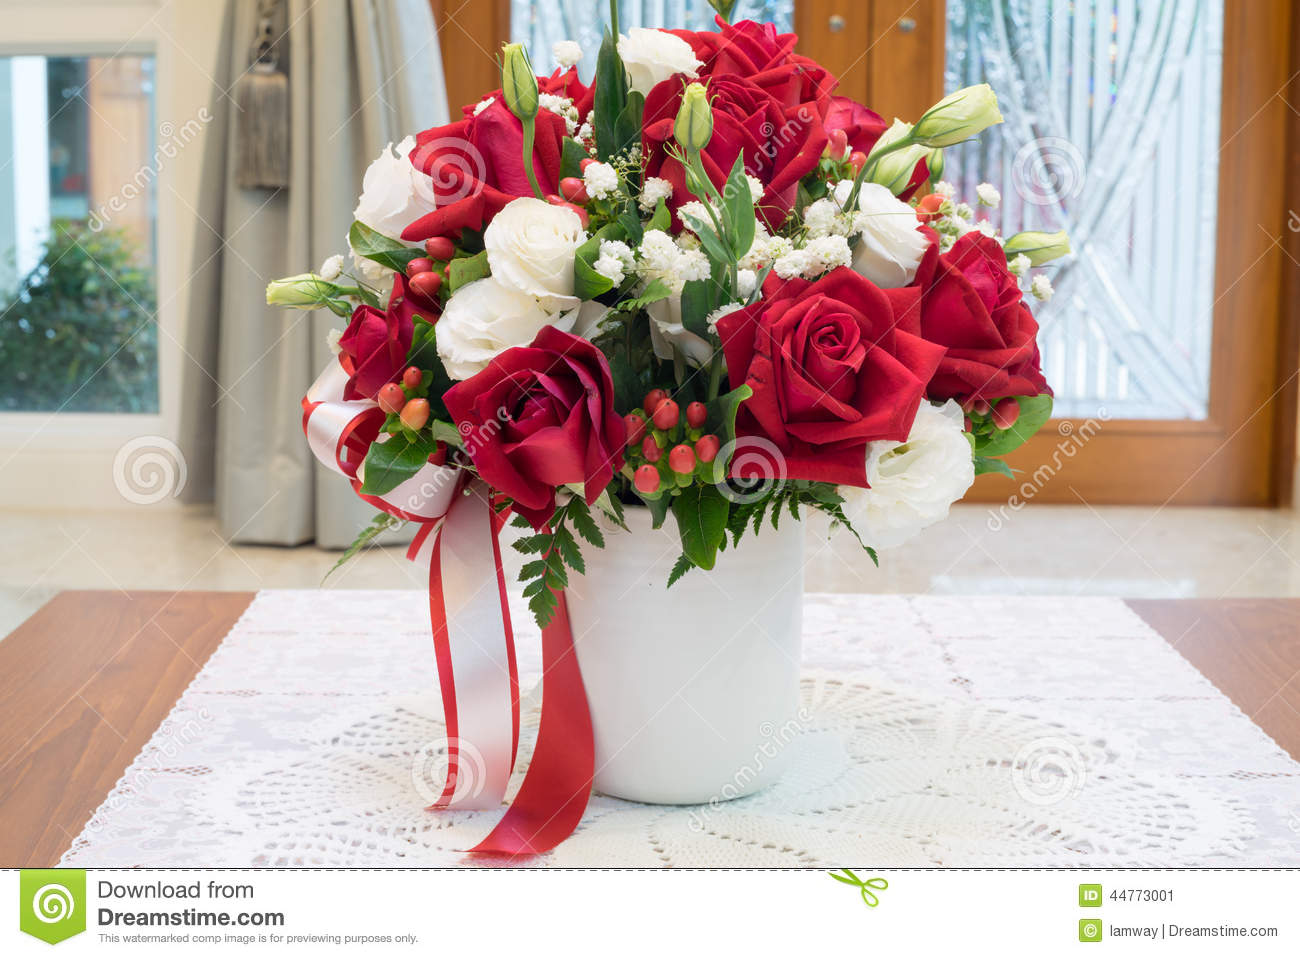 Roses Flowers Bouquet Inside Vase On Desk In House Decoration Stock Photo Image 44773001